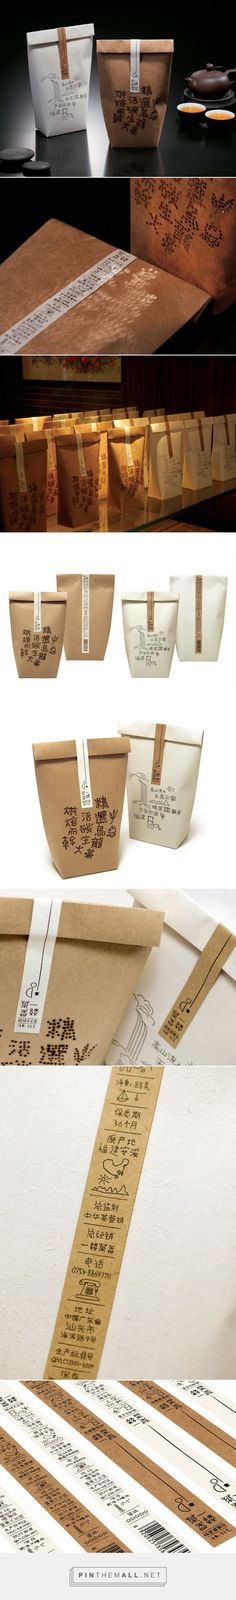 Chinese packaging design - A wisp of tea – CreativeRoots - created via https://pinthemall.net